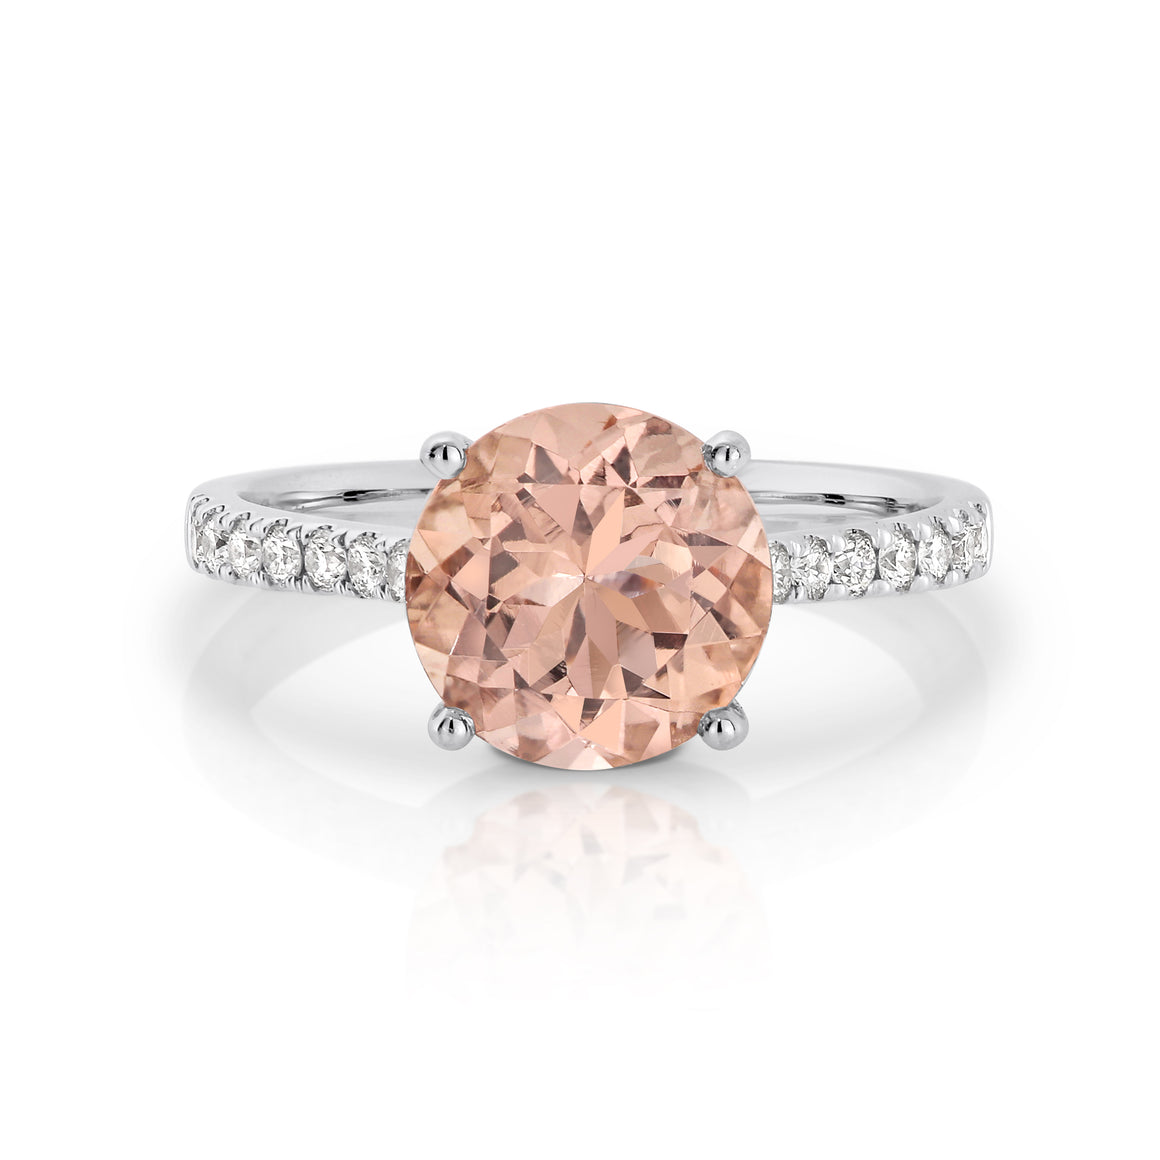 Morganite and Diamond 'Lucille' Ring - Gemma Stone  ABN:51 621 127 866